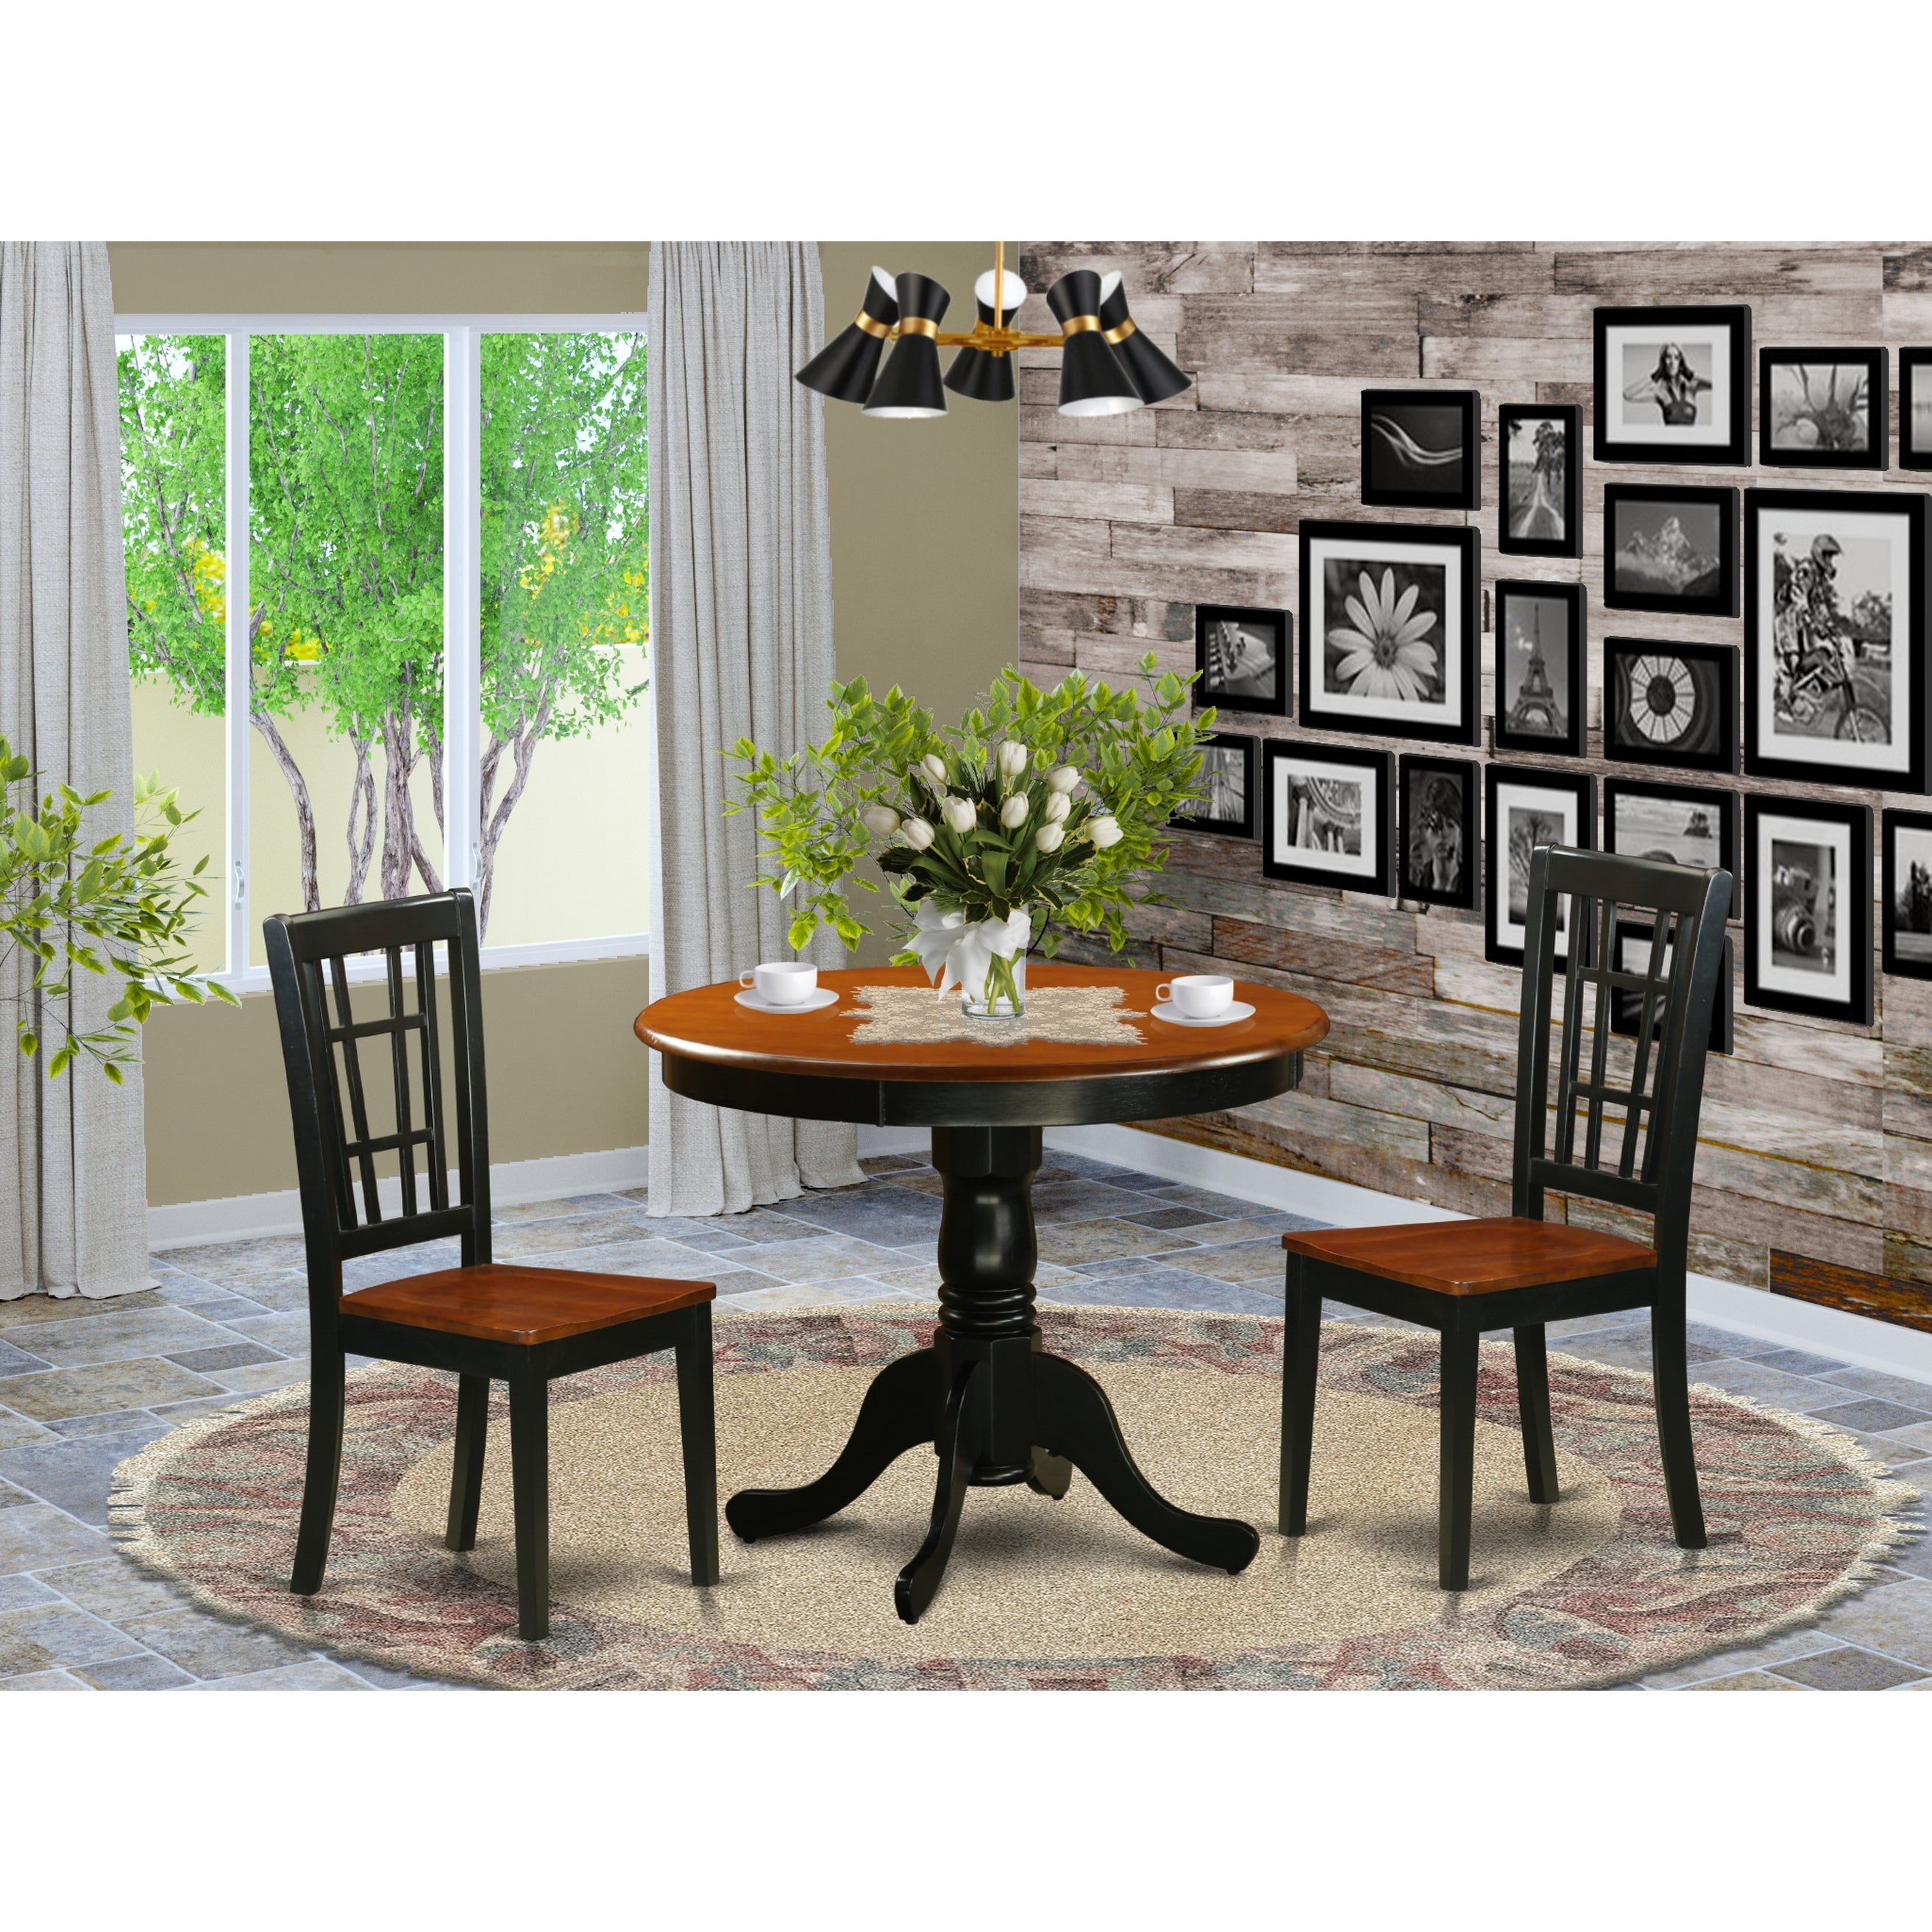 Antique 3 Piece Dining Table With 2 Chairs Finished In Black And Cherry Overstock 12026590